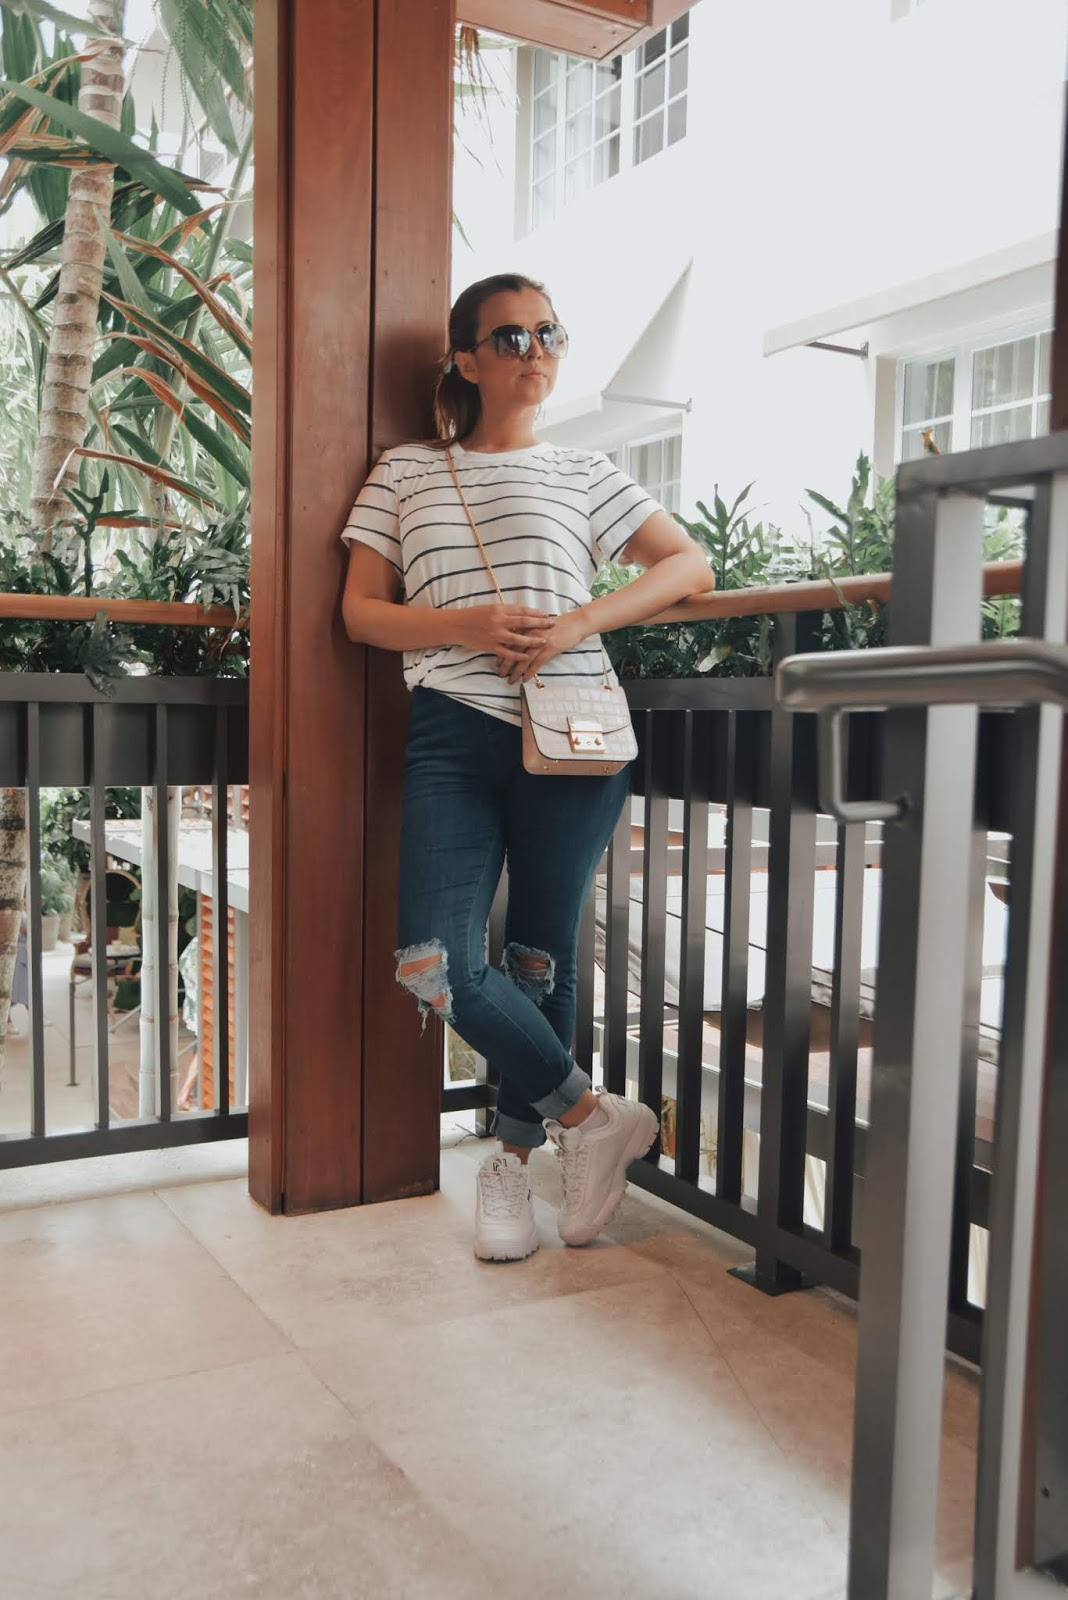 Cómo usar rayas y jeans durante el verano by Mari Estilo-fashion blogger-tendencias-look of the day-streetstyle-miami swim week-miami beach-fashionista-rayas-denim lovers-dcblogger-